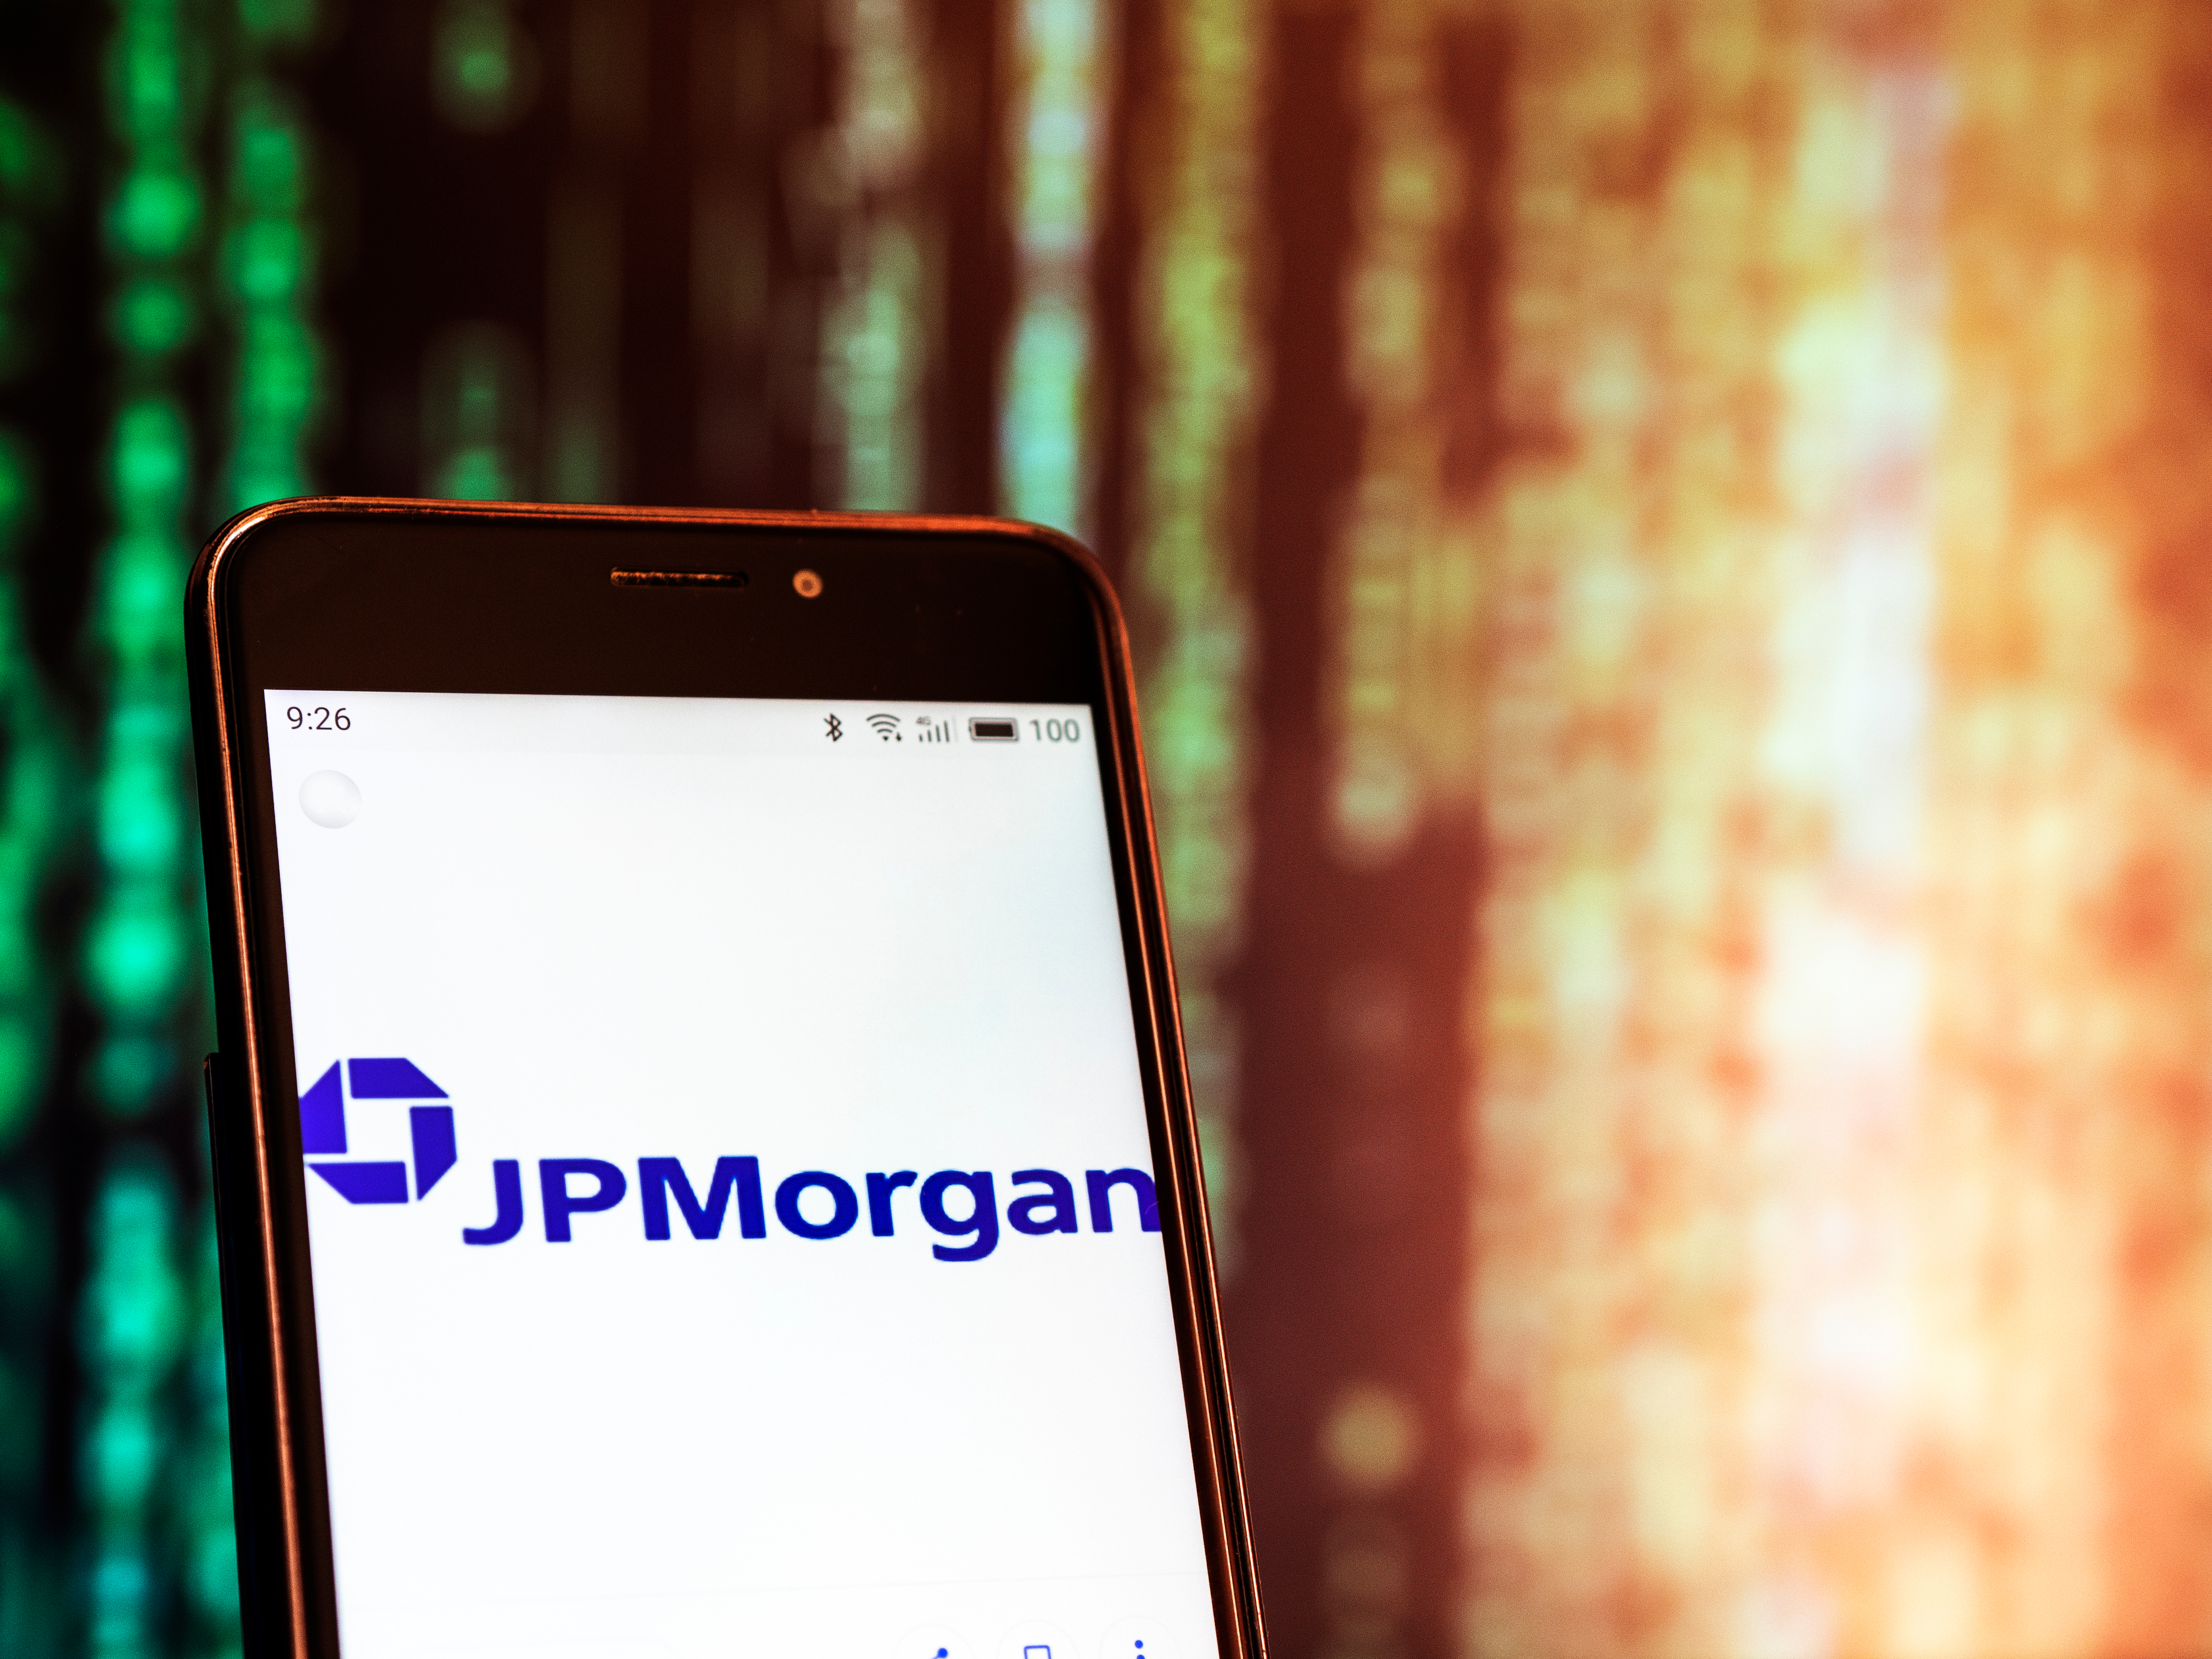 JPMorgan revealed it's launching its own cryptocurrency. Shutterstock image via user Igor Golovniov